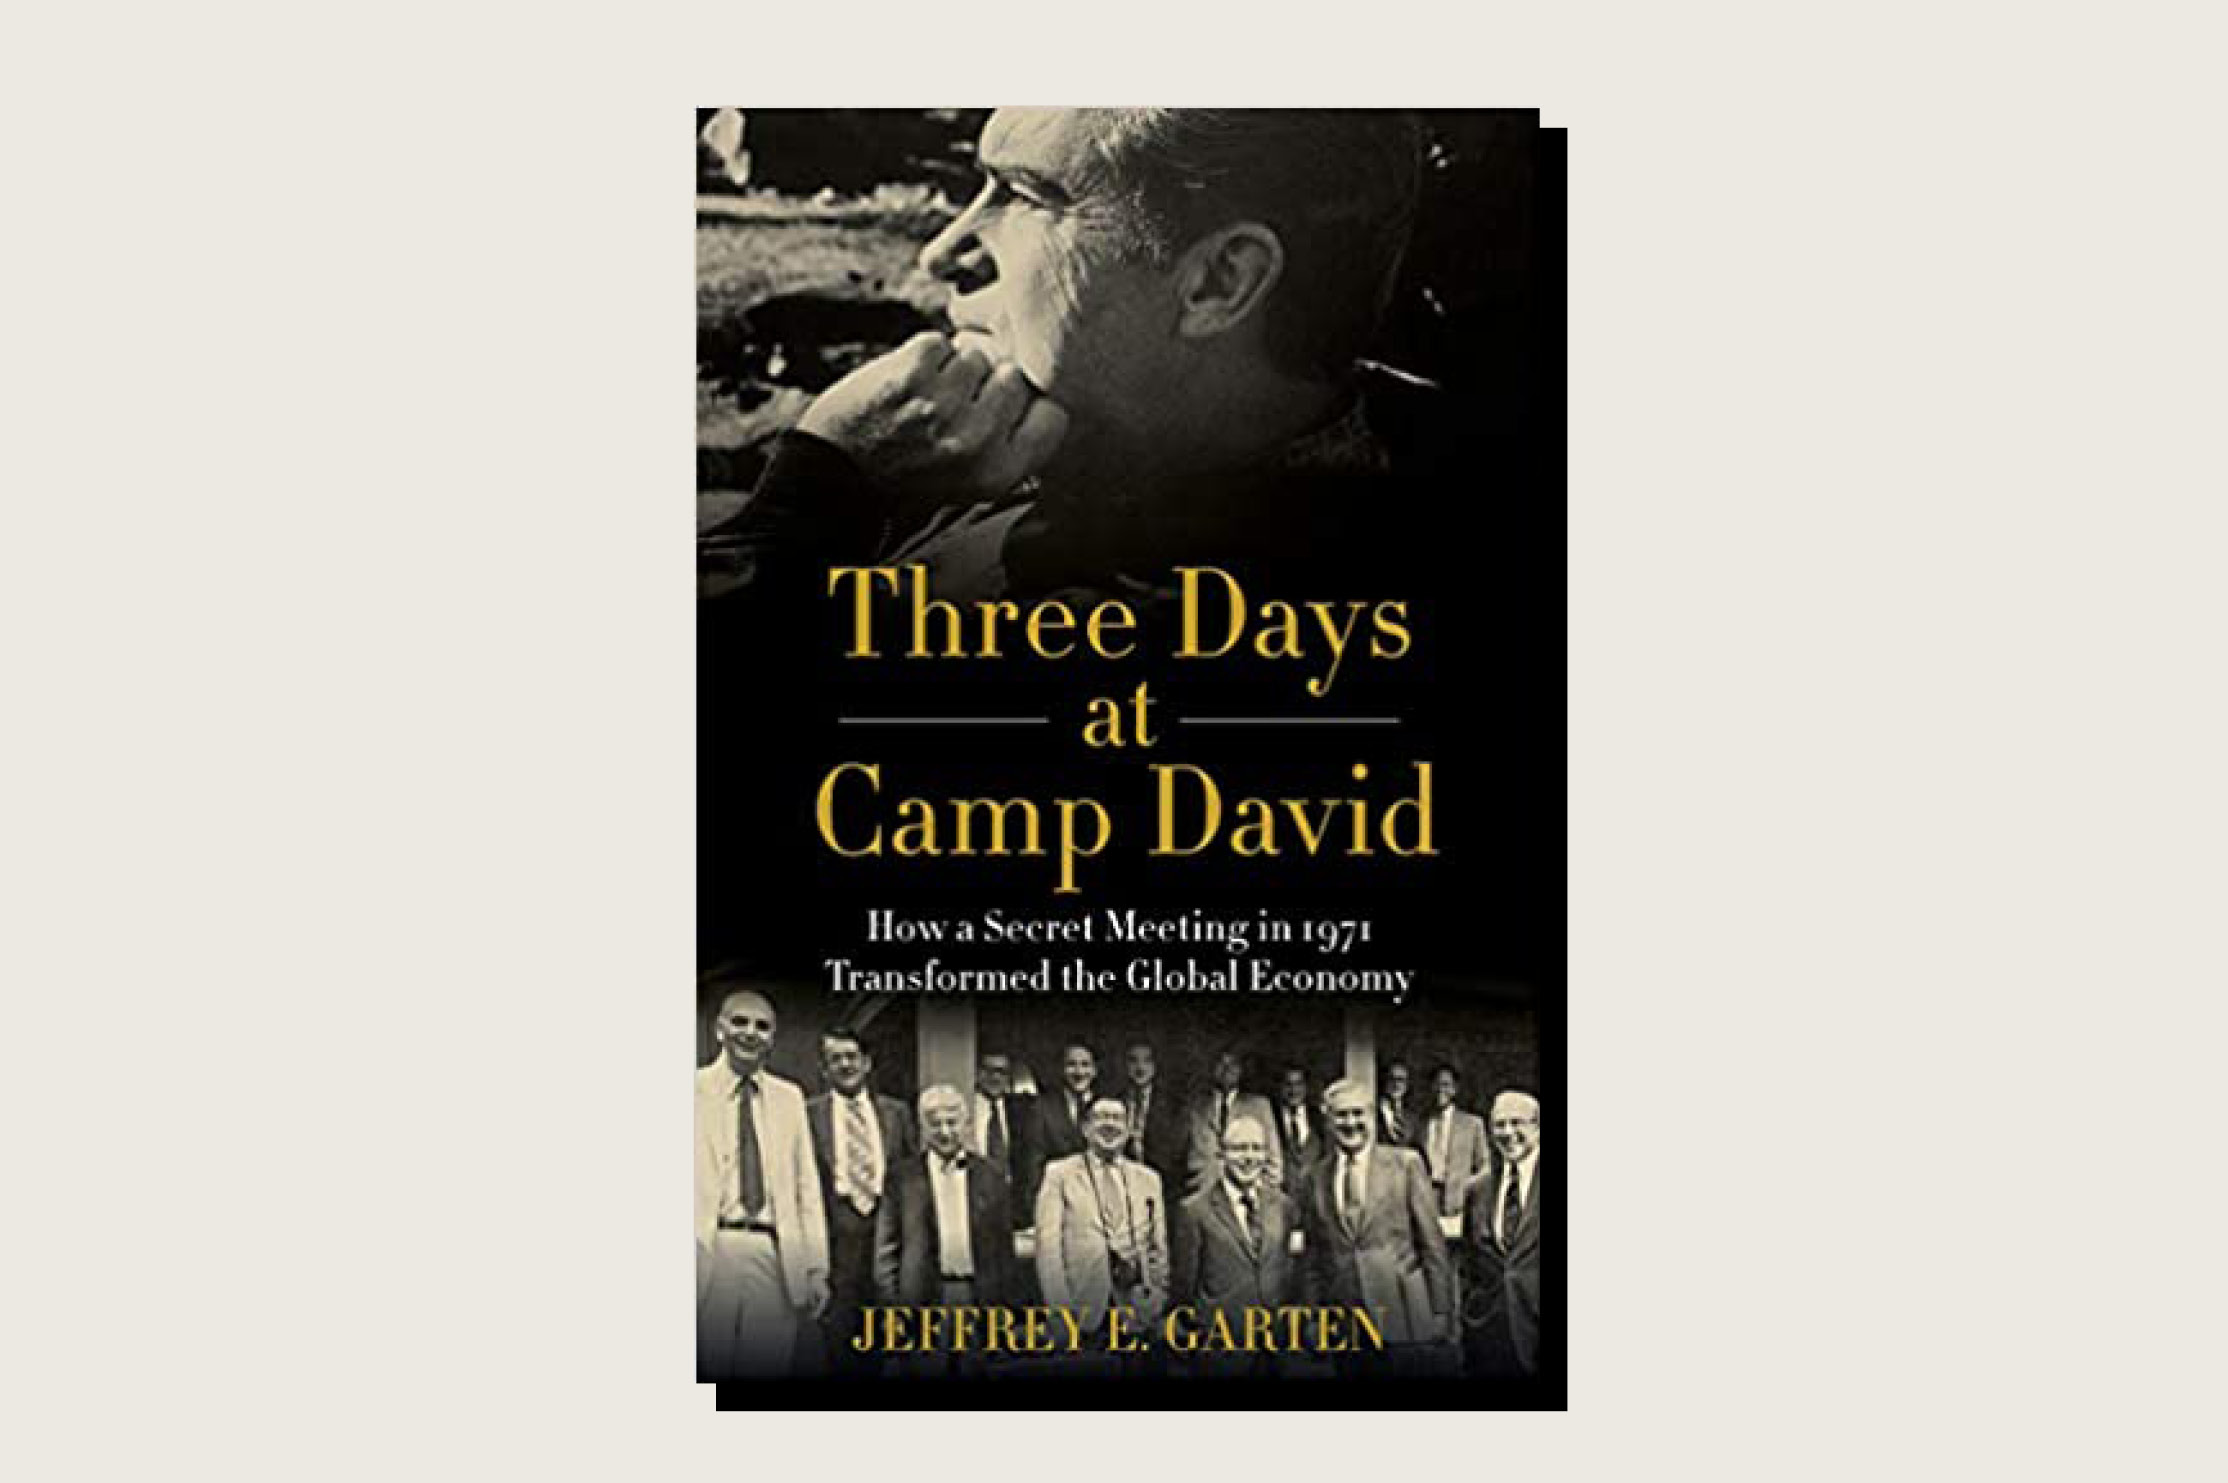 Three Days at Camp David: How a Secret Meeting in 1971 Transformed the Global Economy, Jeffrey E. Garten, HarperCollins, 425 pp., .49, July 2021